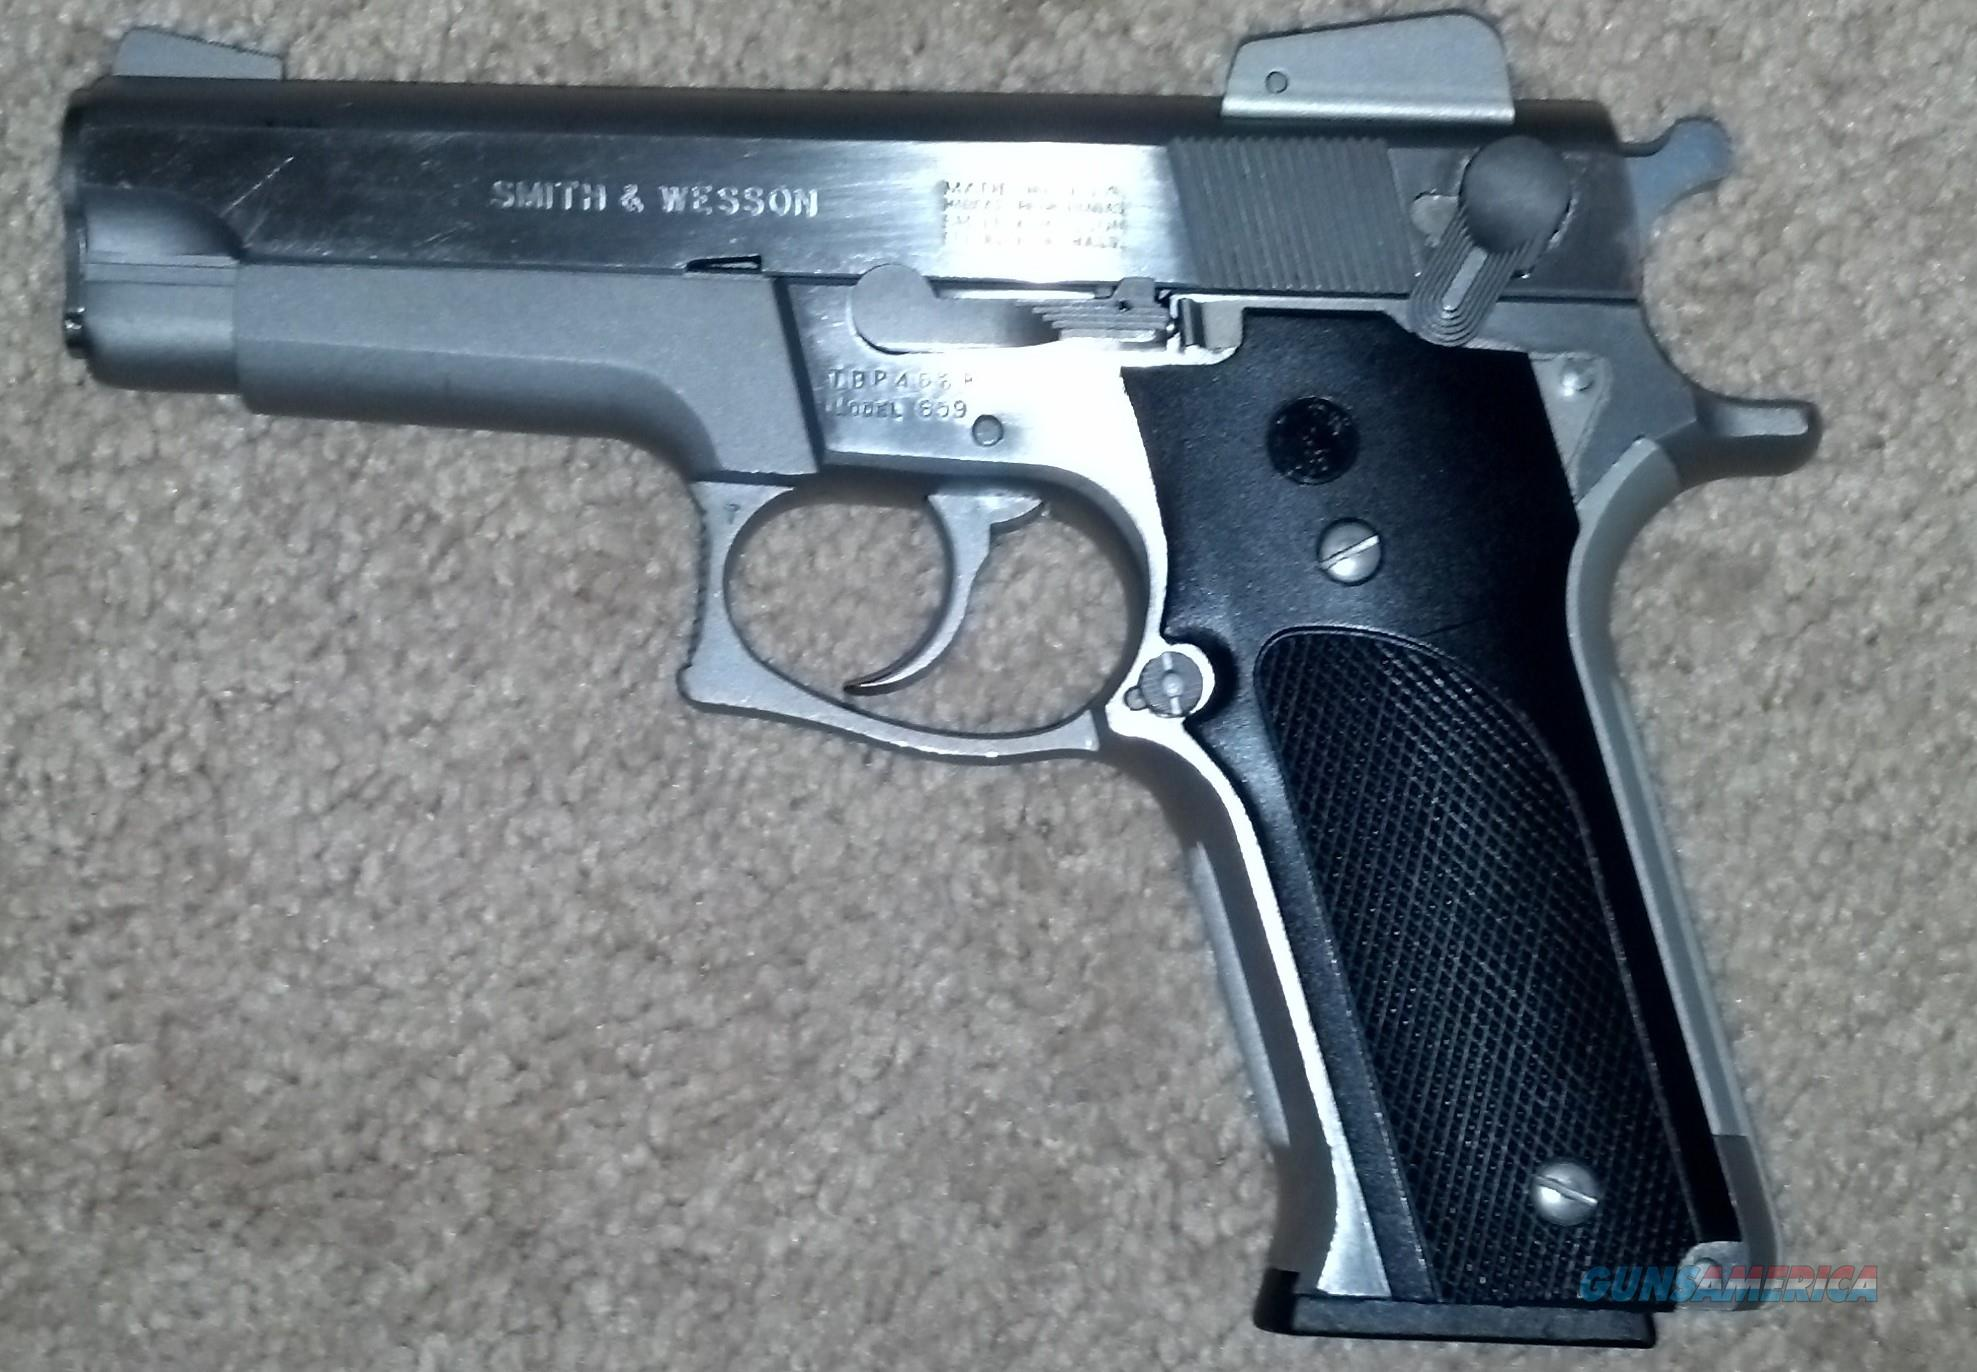 Smith & Wesson 659 Stainless Steel  Guns > Pistols > Smith & Wesson Pistols - Autos > Steel Frame